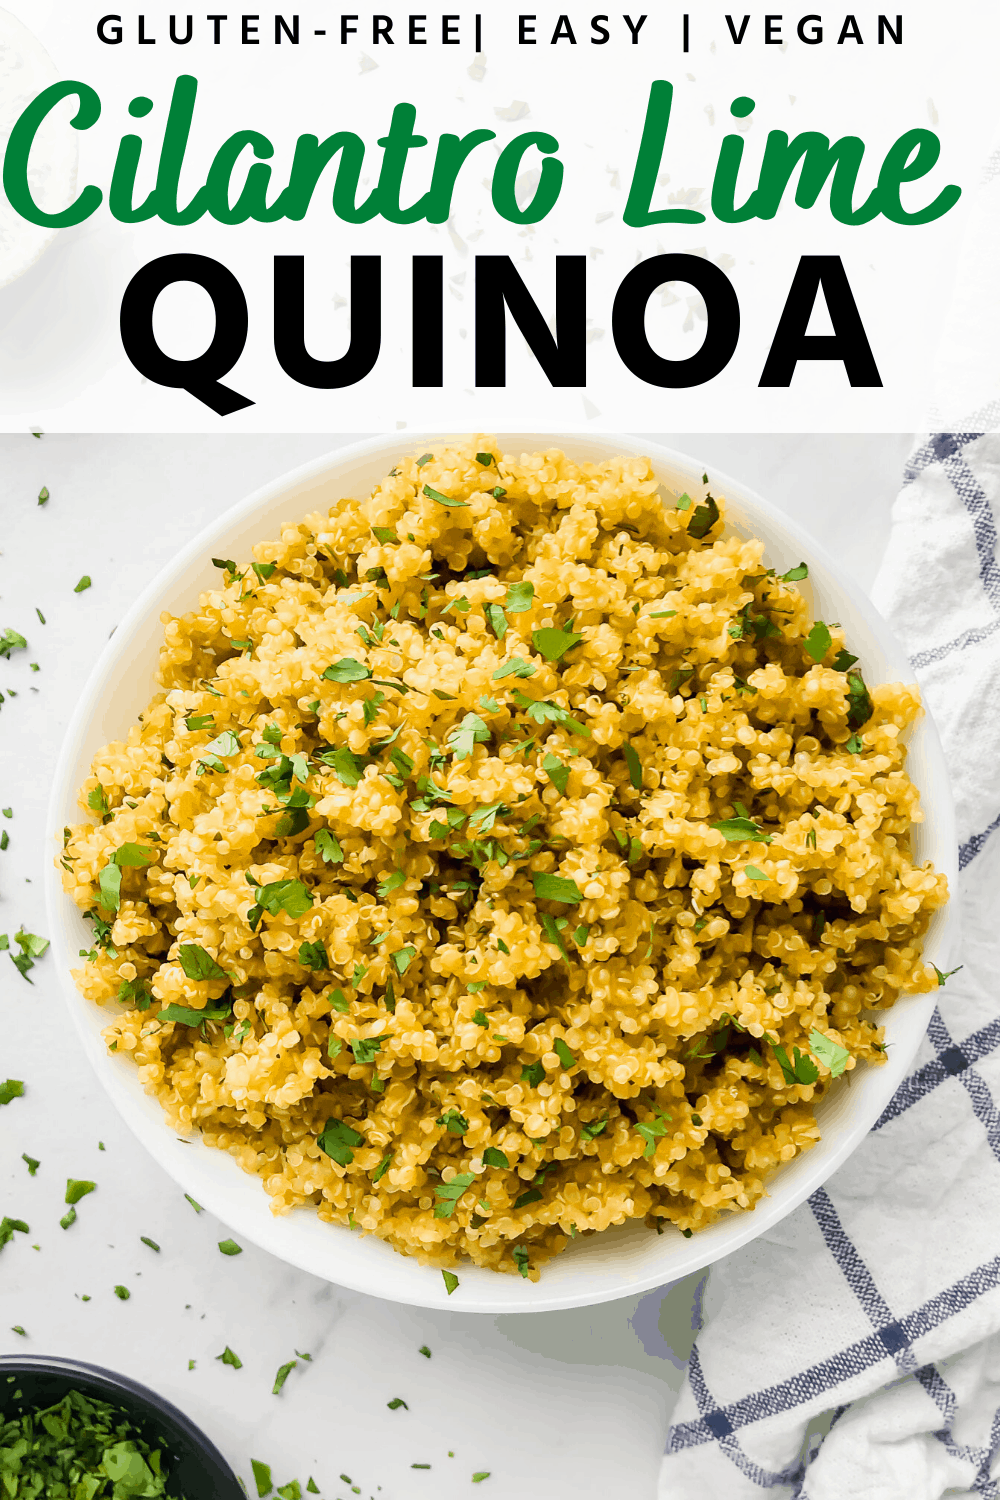 Cilantro lime quinoa in a bowl with text overlay